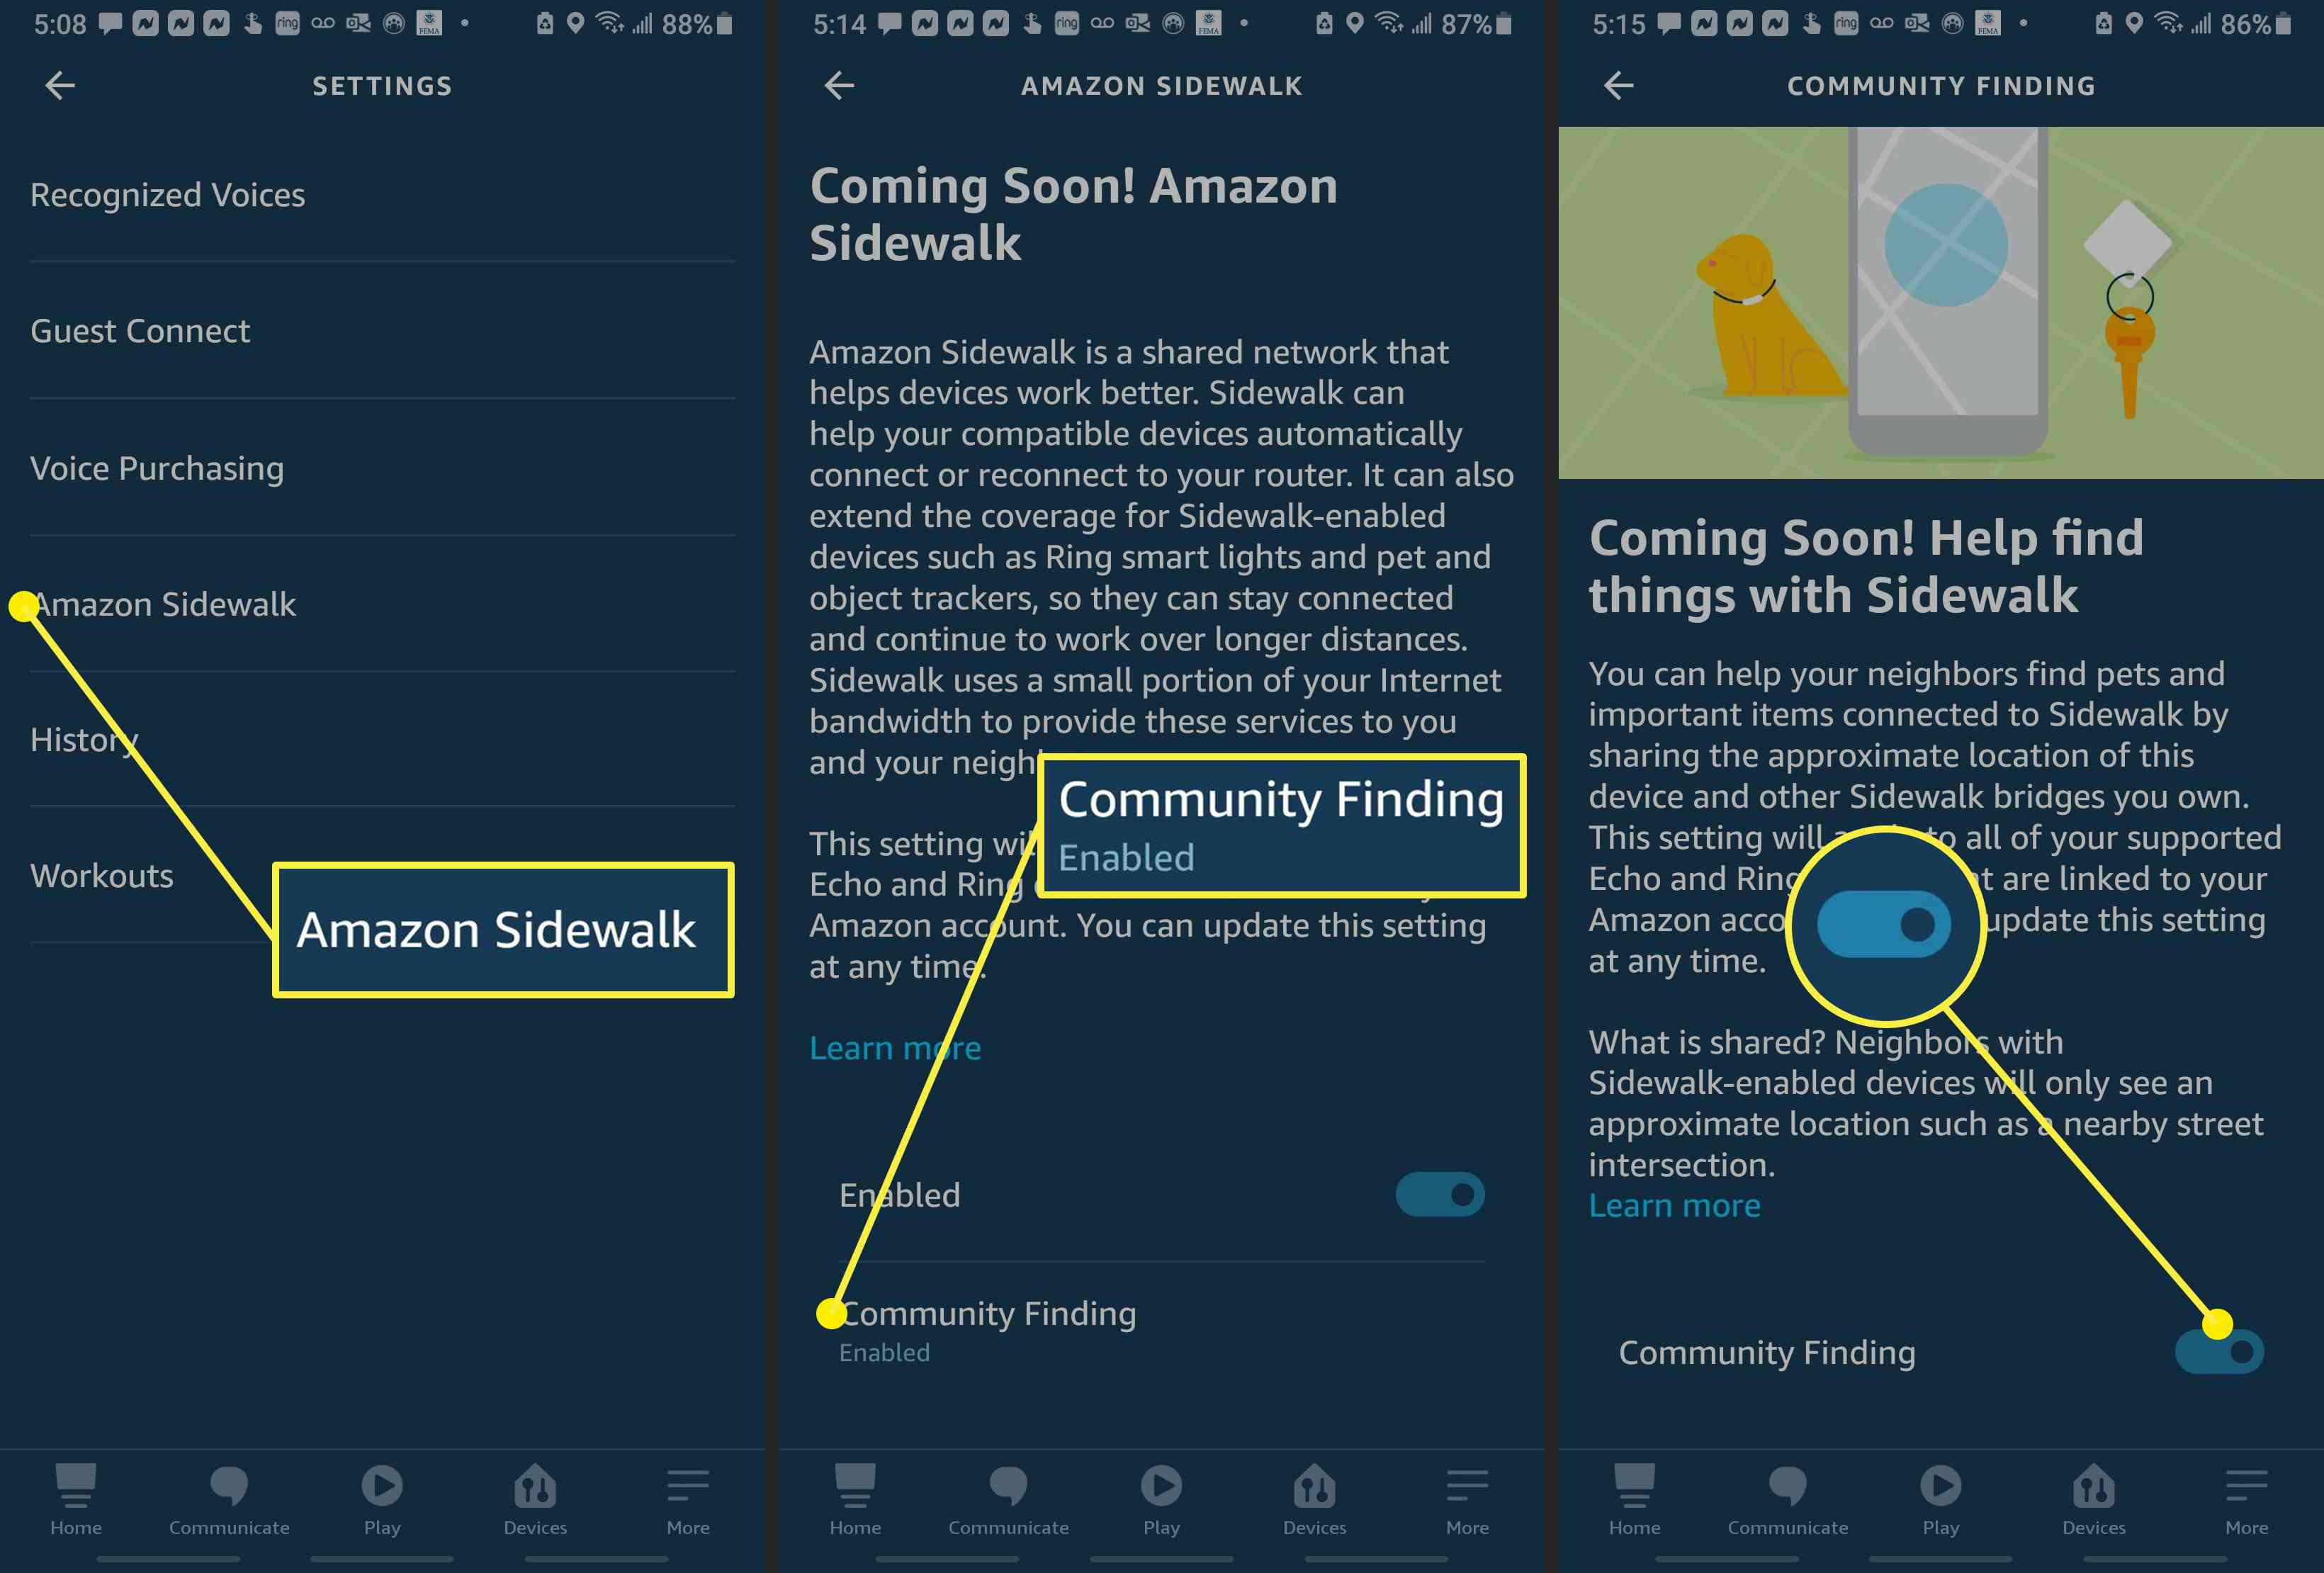 Screenshots from the Alexa app showing how to disable Community Finding.